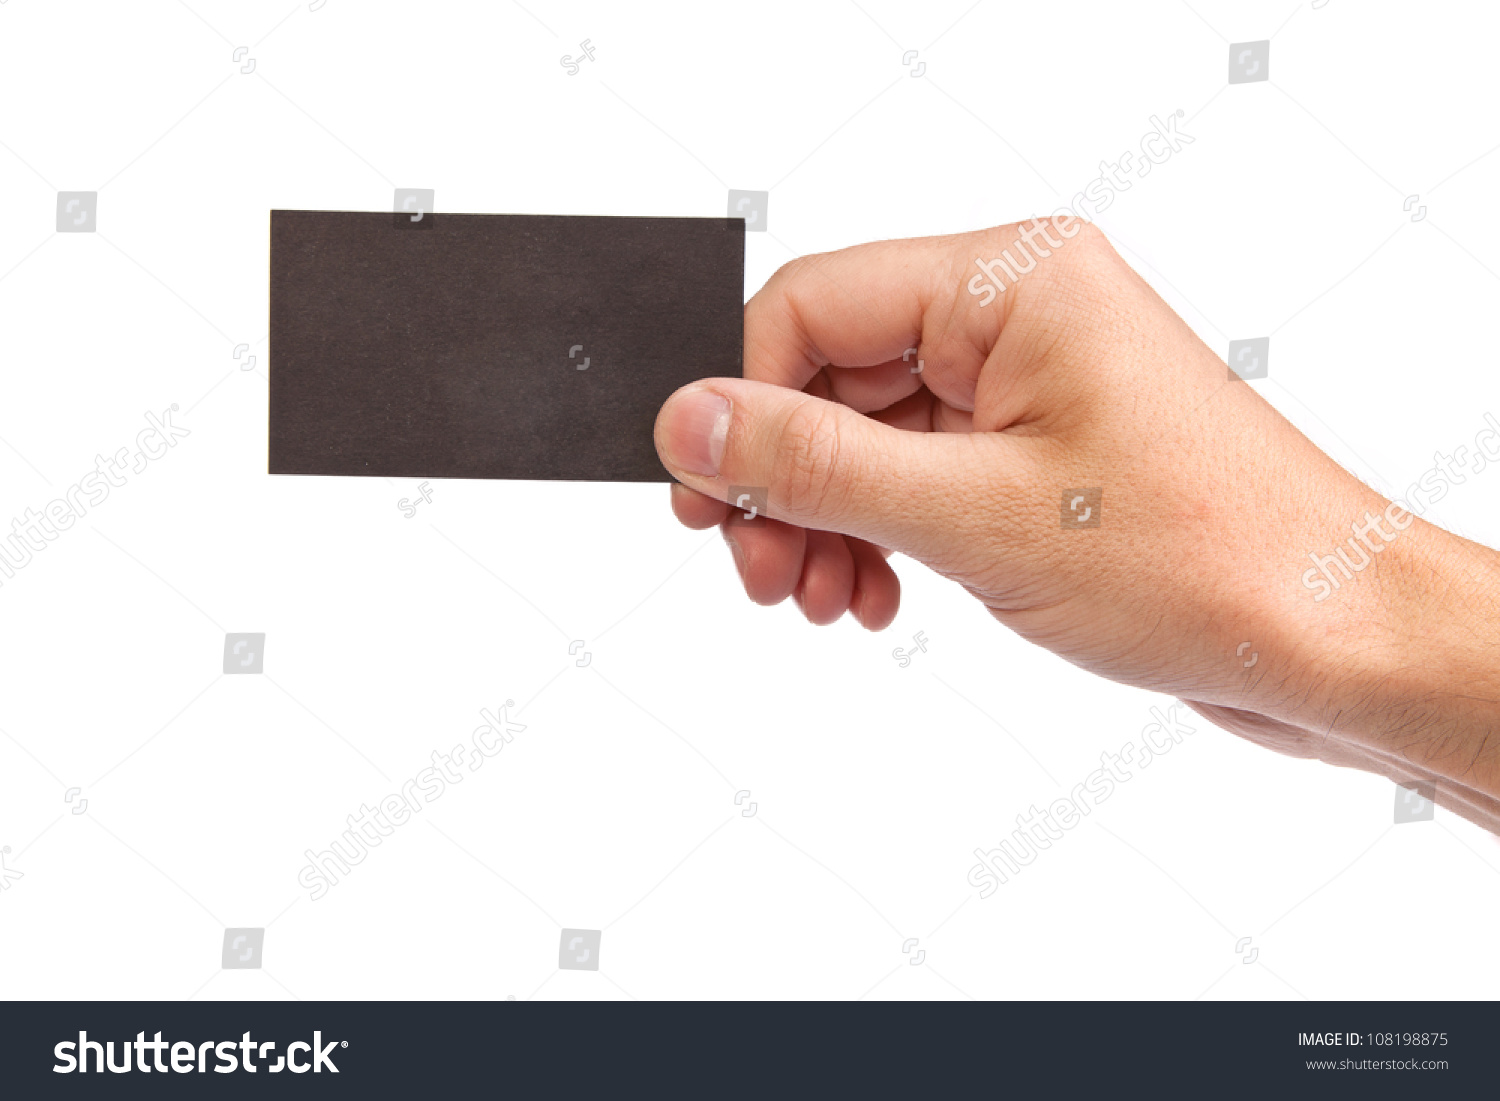 Technology Management Image: Businessman'S Hand Holding Blank Paper Business Card